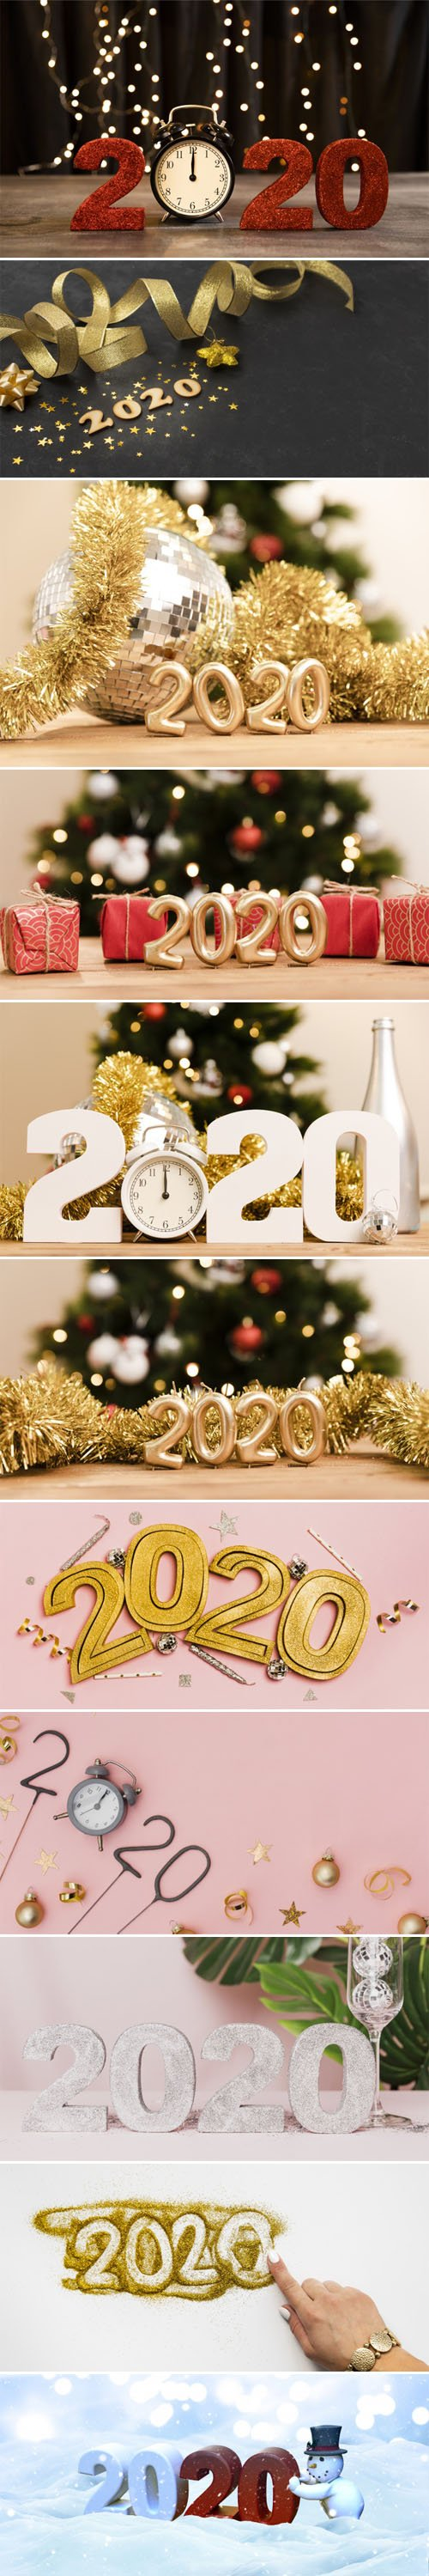 11 New Year 2020 Photos Collection